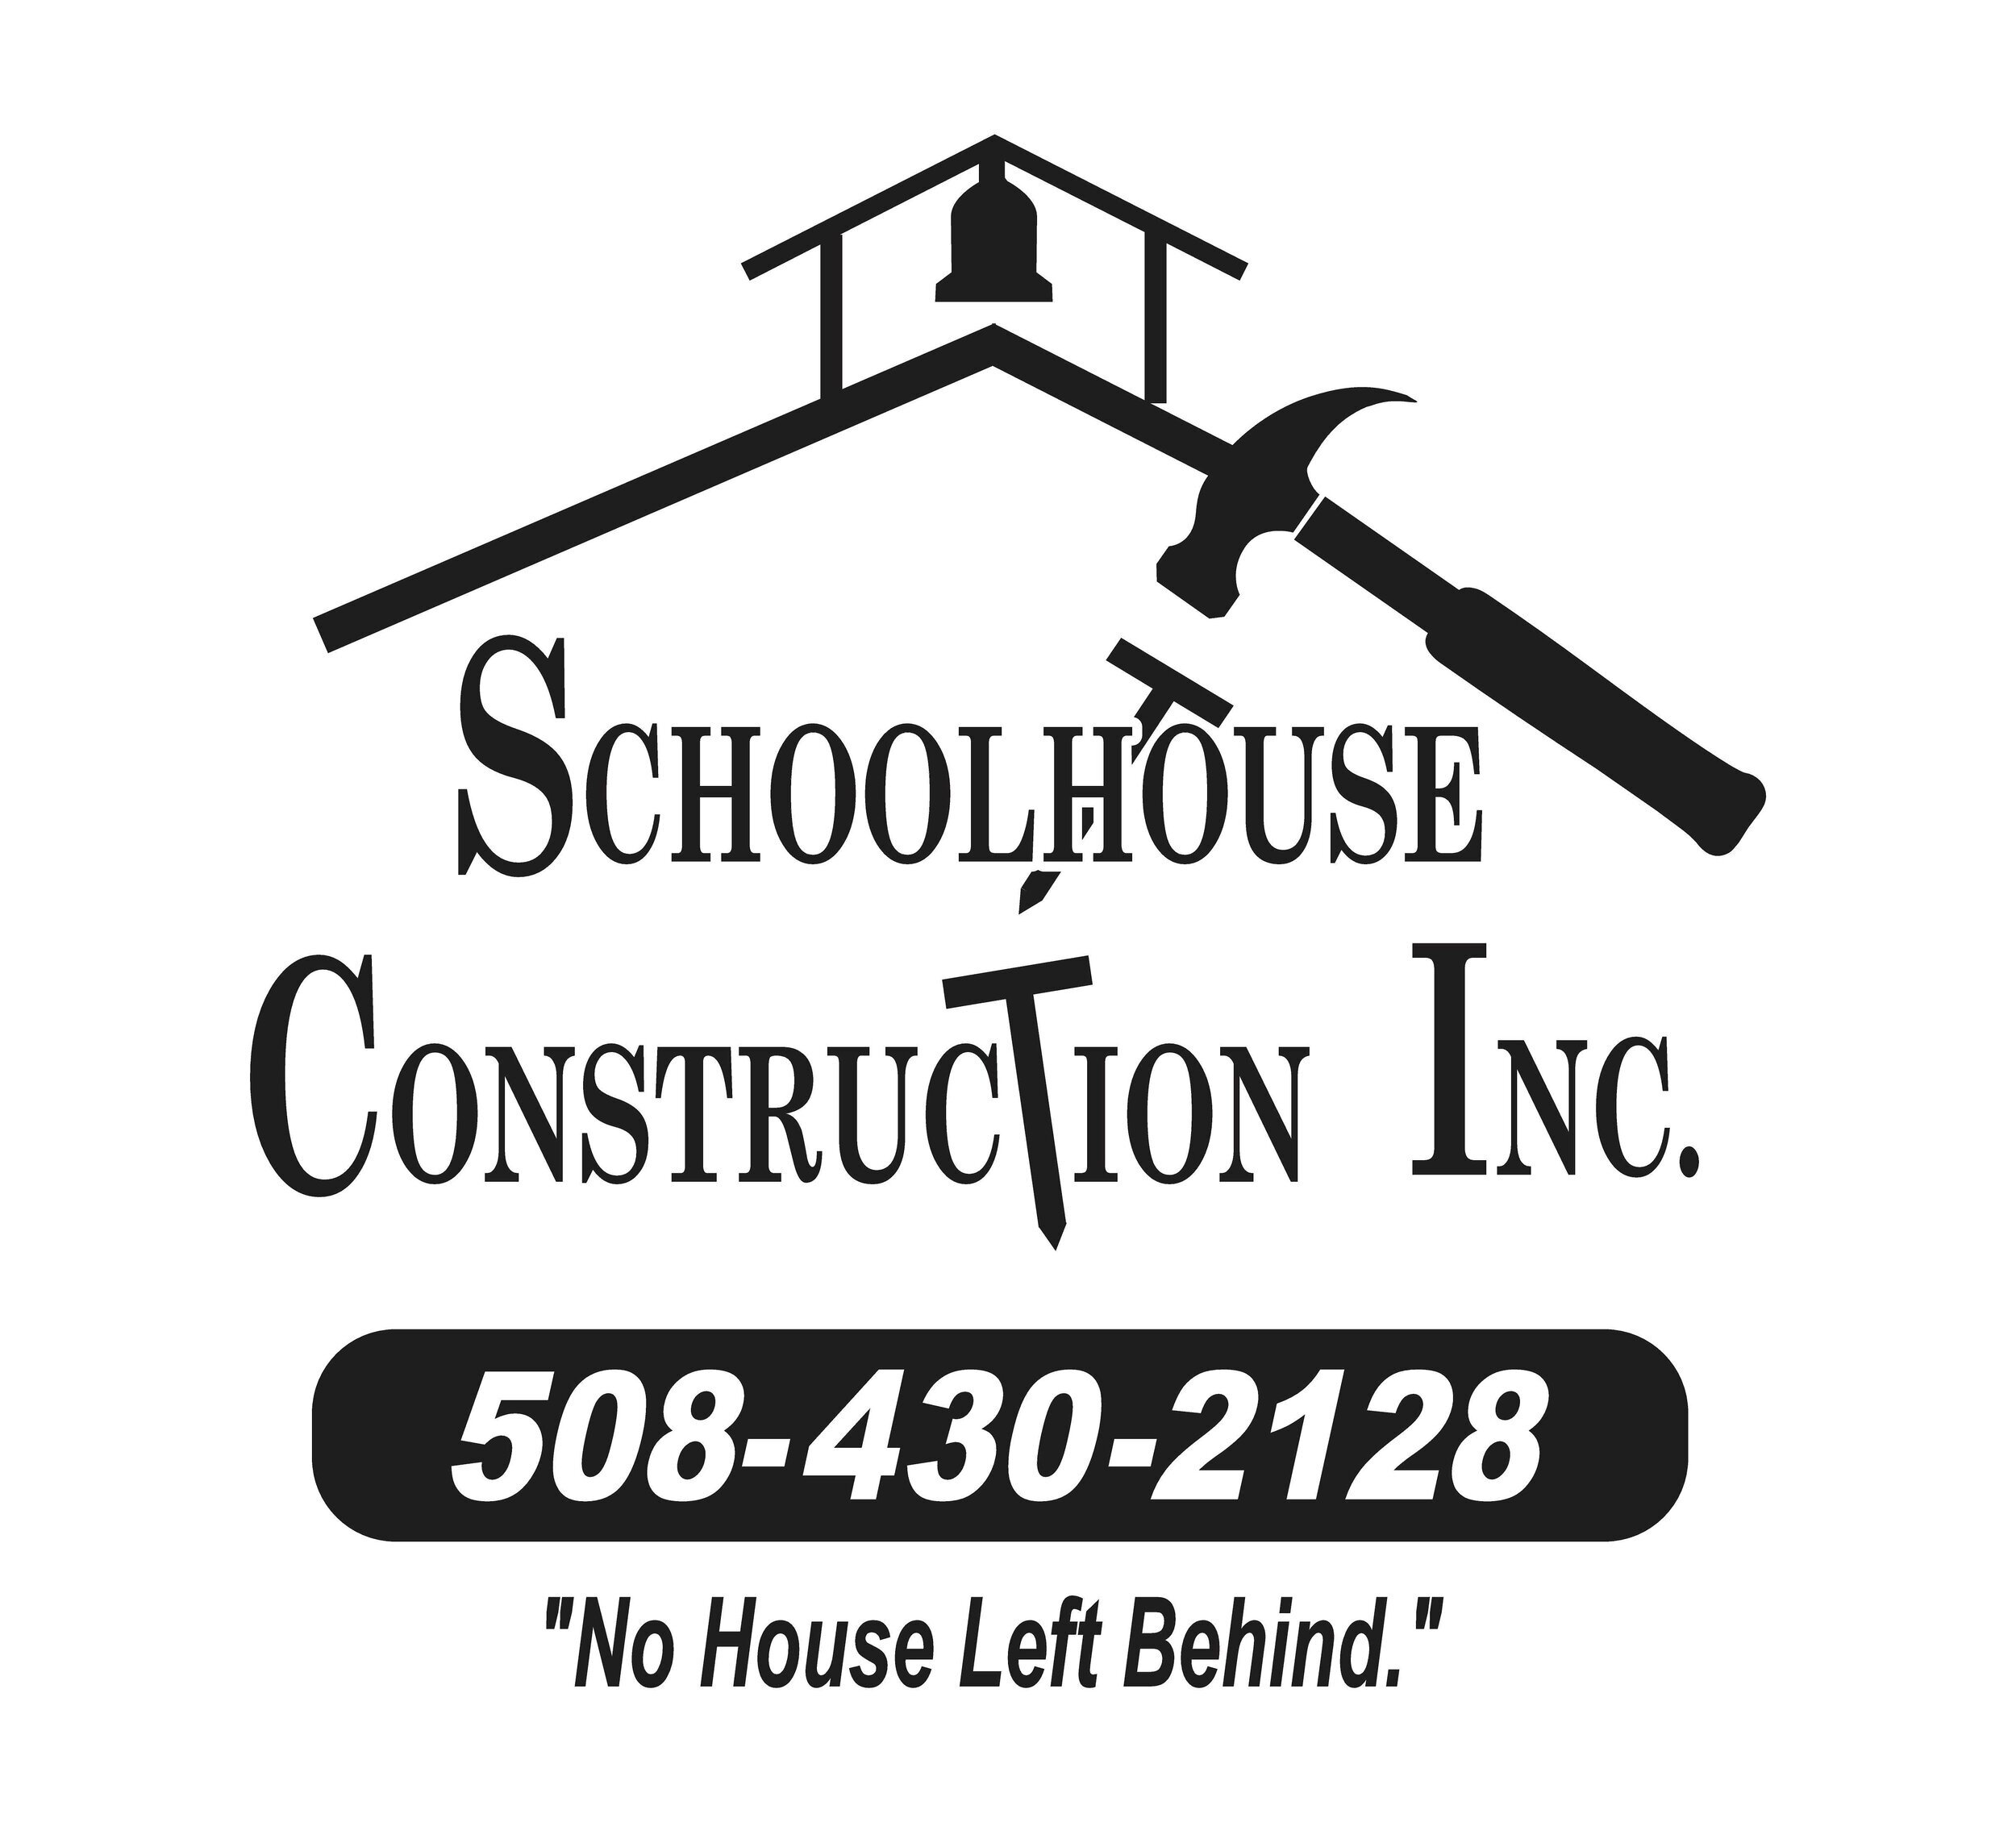 SCHOOLHOUSE_CONSTRUCTION